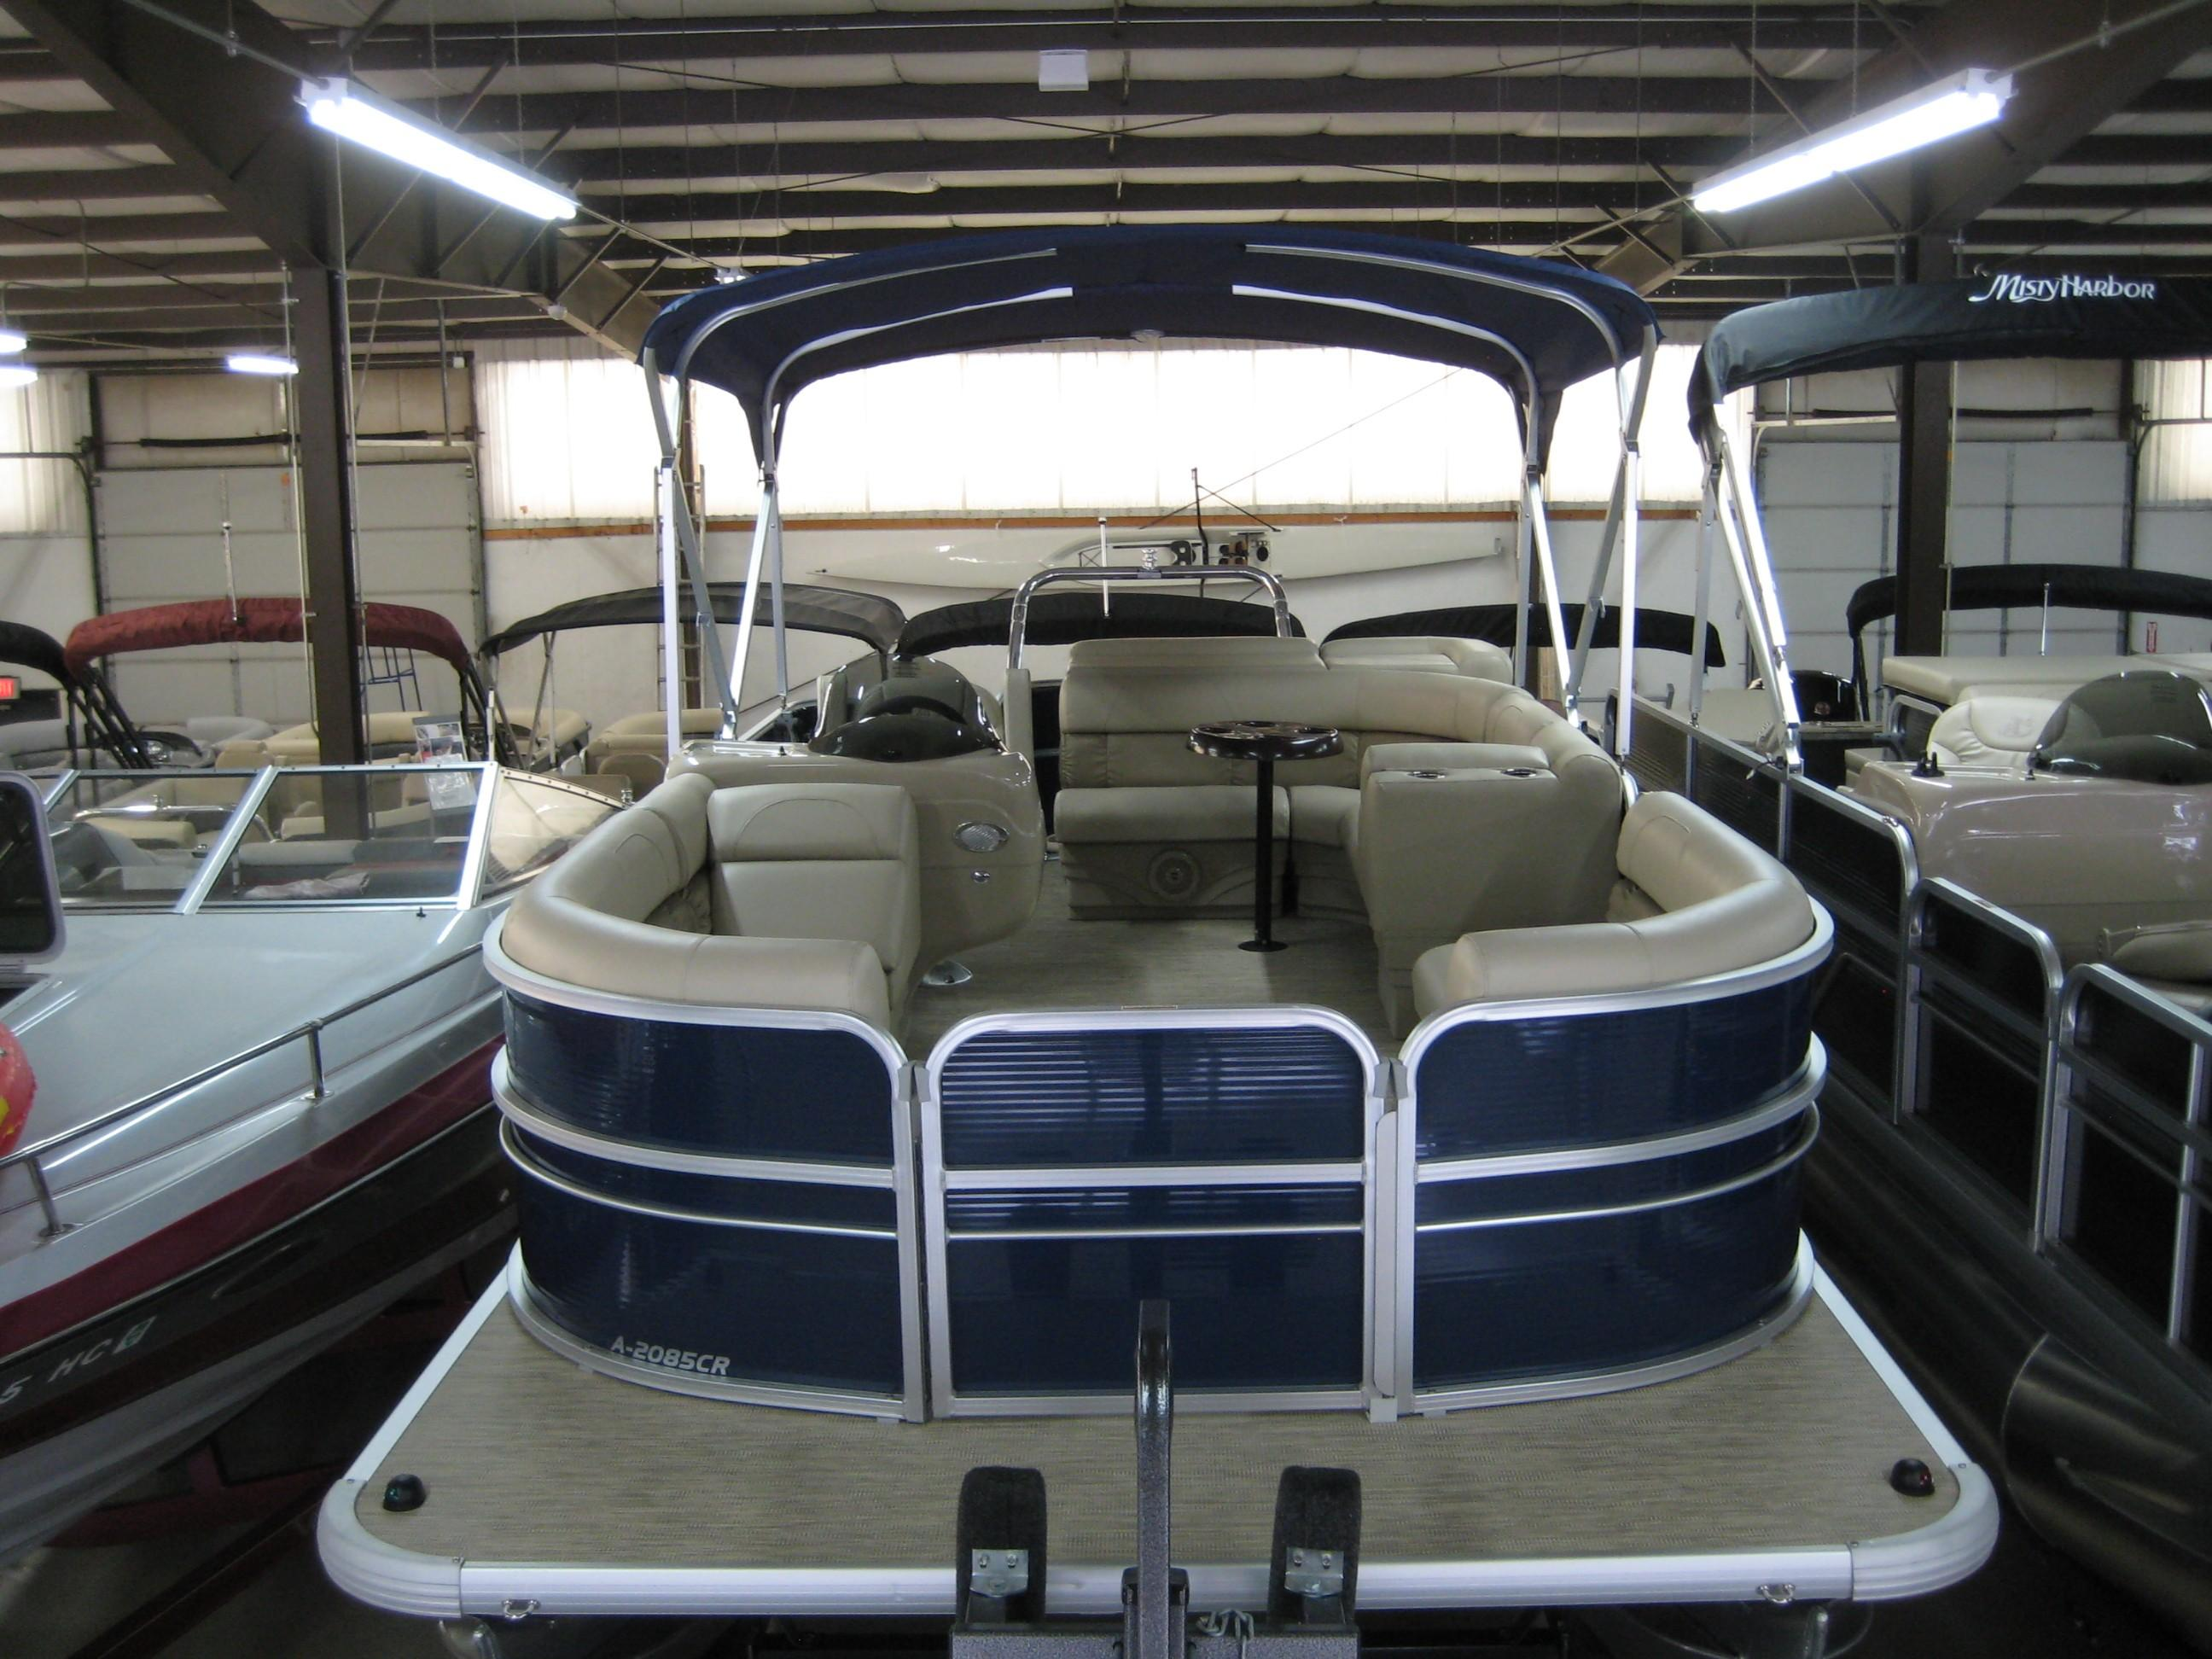 New Misty Harbor 2085CR ADVENTURE Boats For Sale - Carl Stirns